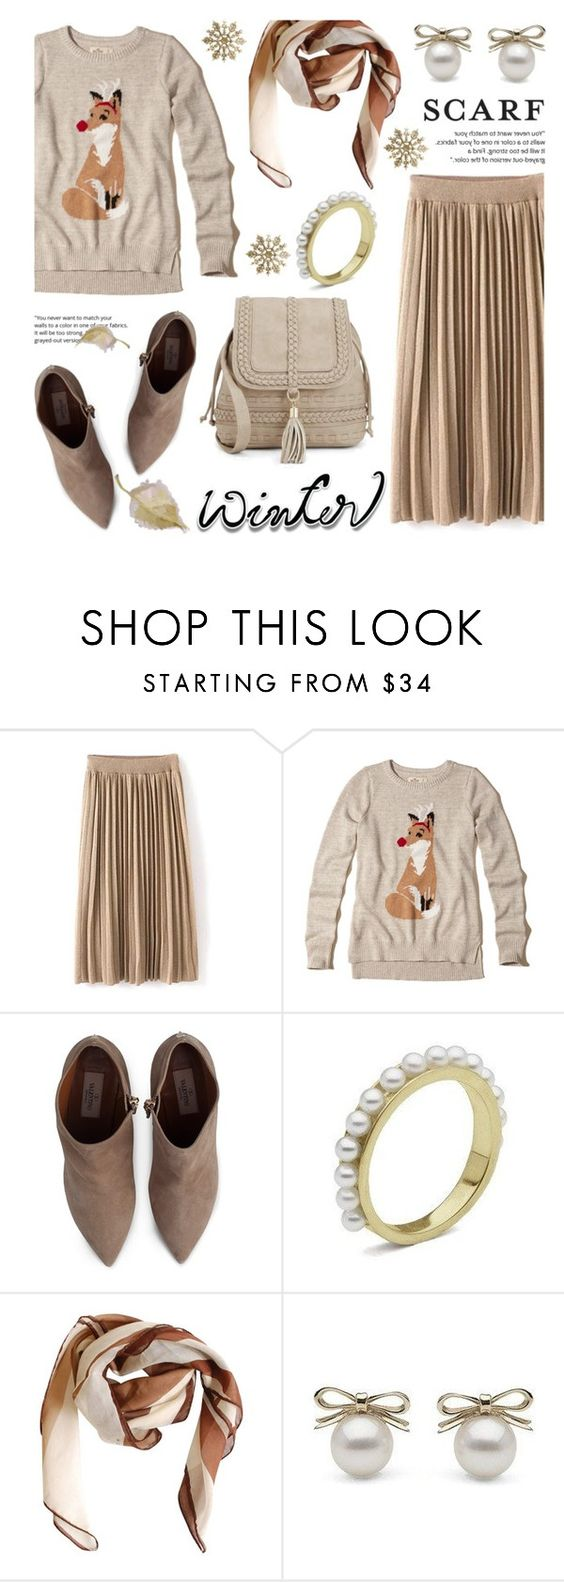 """""""Winter Scarf Style"""" by littlehjewelry ❤ liked on Polyvore featuring Hollister Co., Valentino, HUGO, scarf, contestentry, pearljewelry and littlehjewelry"""